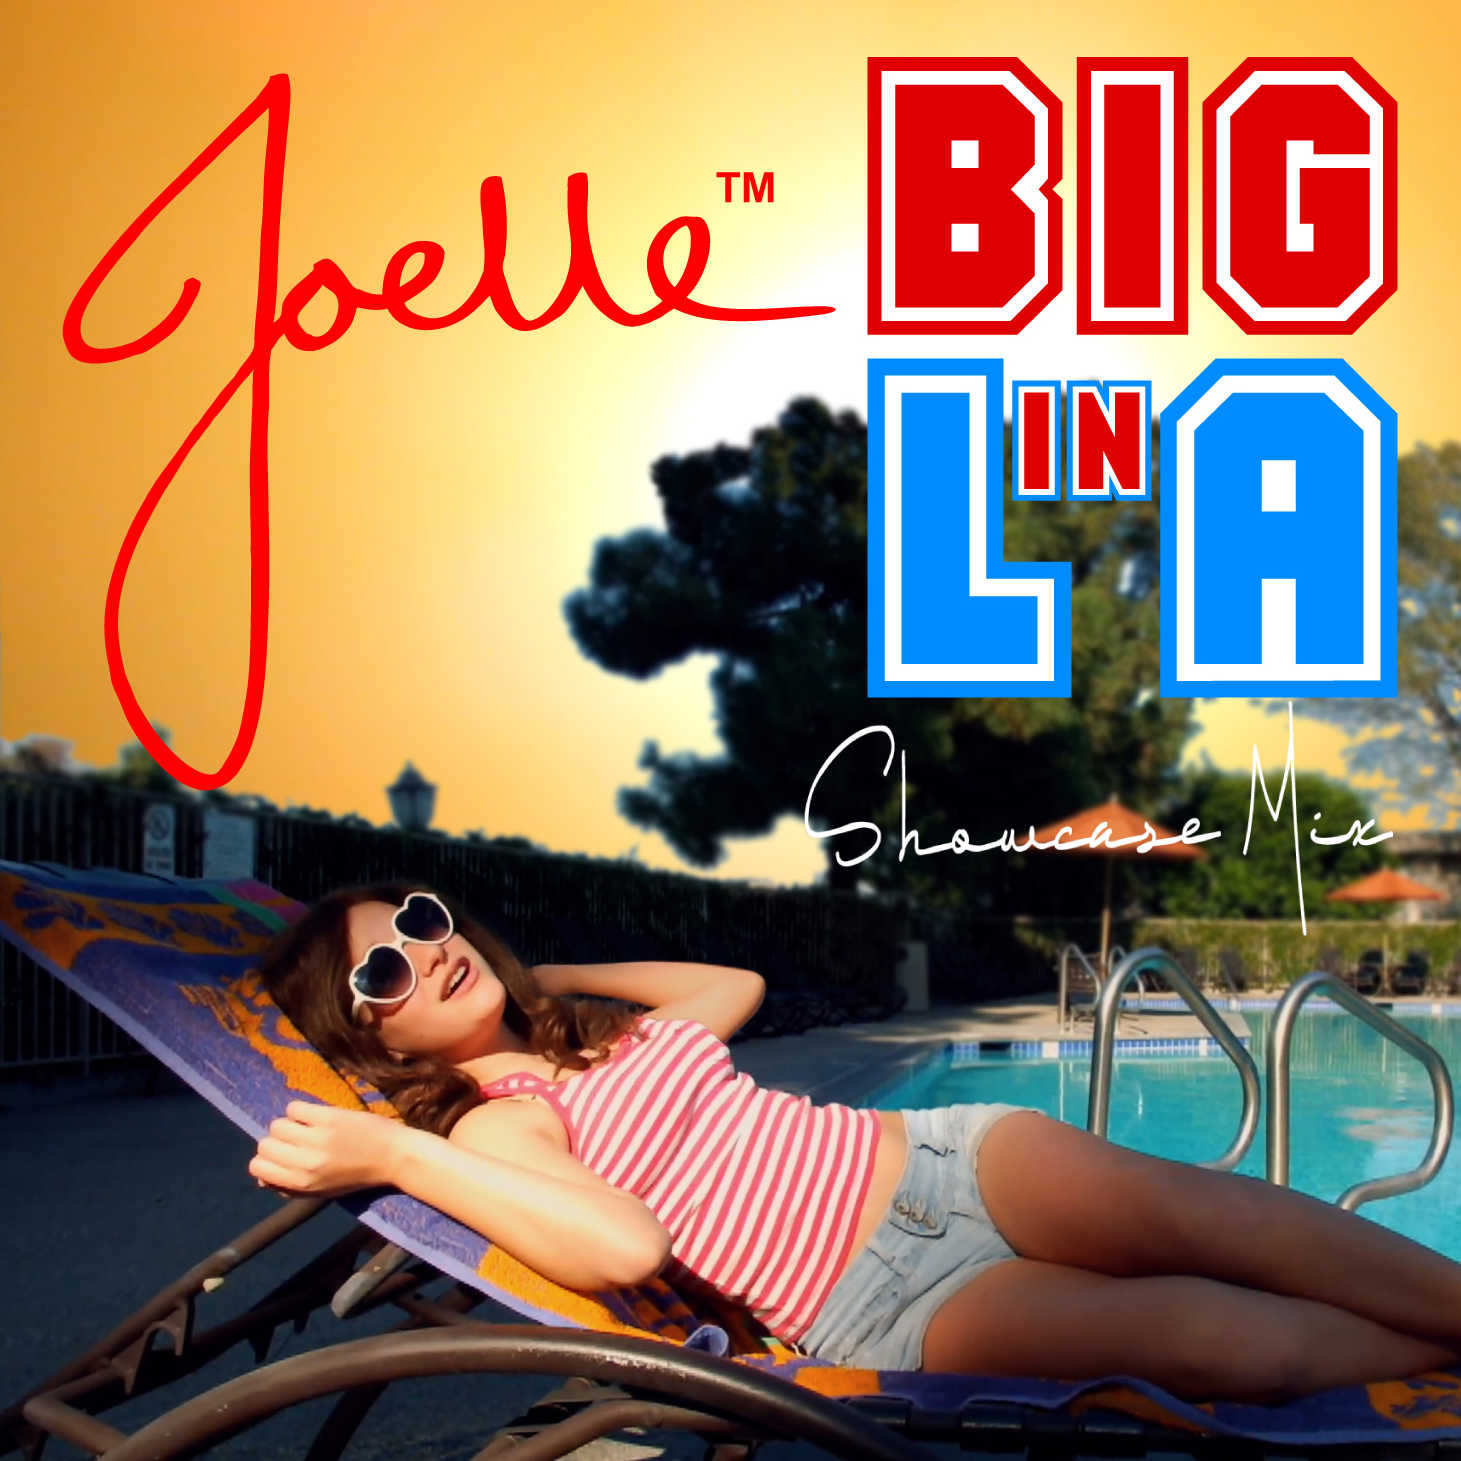 Big In LA (Showcase Mix) CD